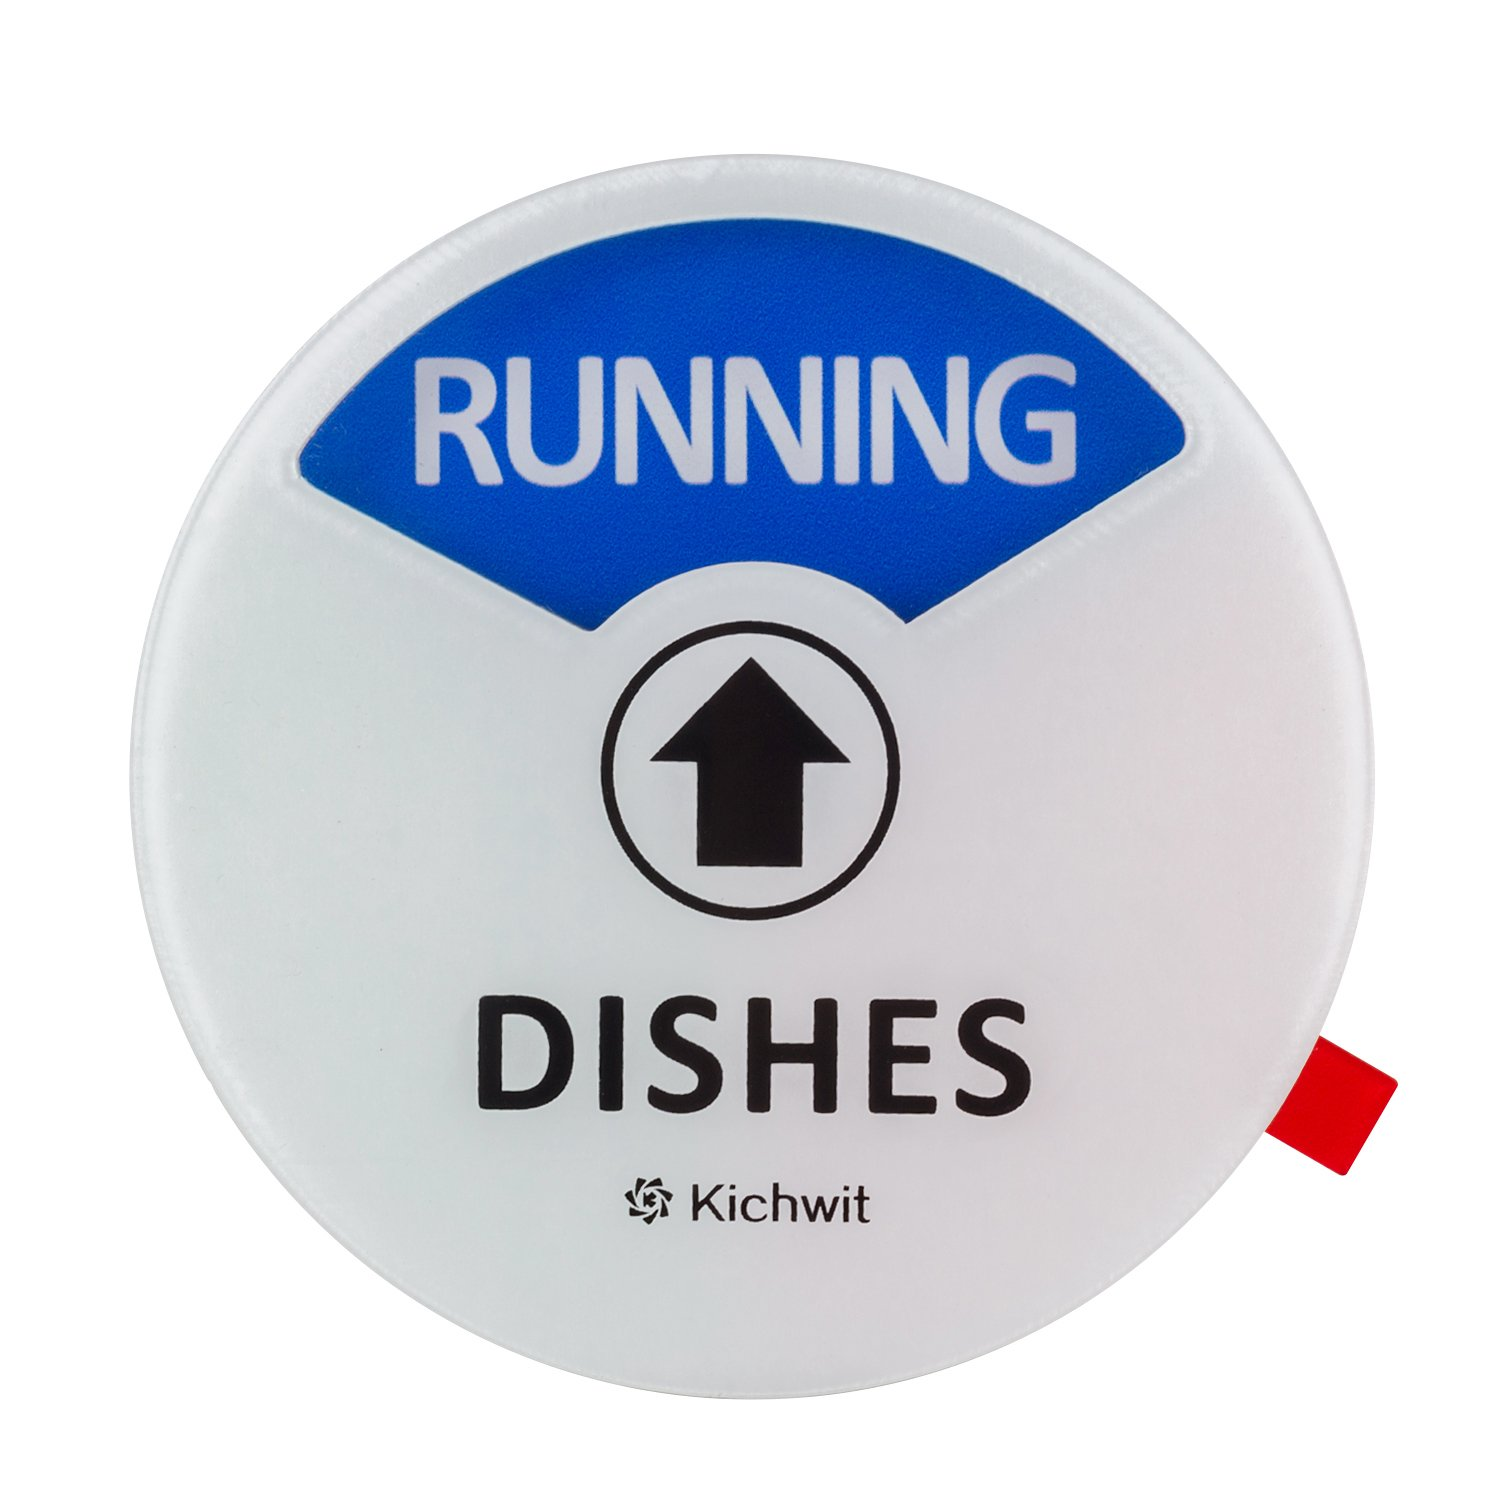 """Kichwit Clean Dirty Dishwasher Magnet with the 3rd Option """"Running"""", Perfect for Quiet Dishwashers, Non-Scratch Strong Magnet Backing, Residue Free Adhesive Included, 3.5"""" Diameter, White"""